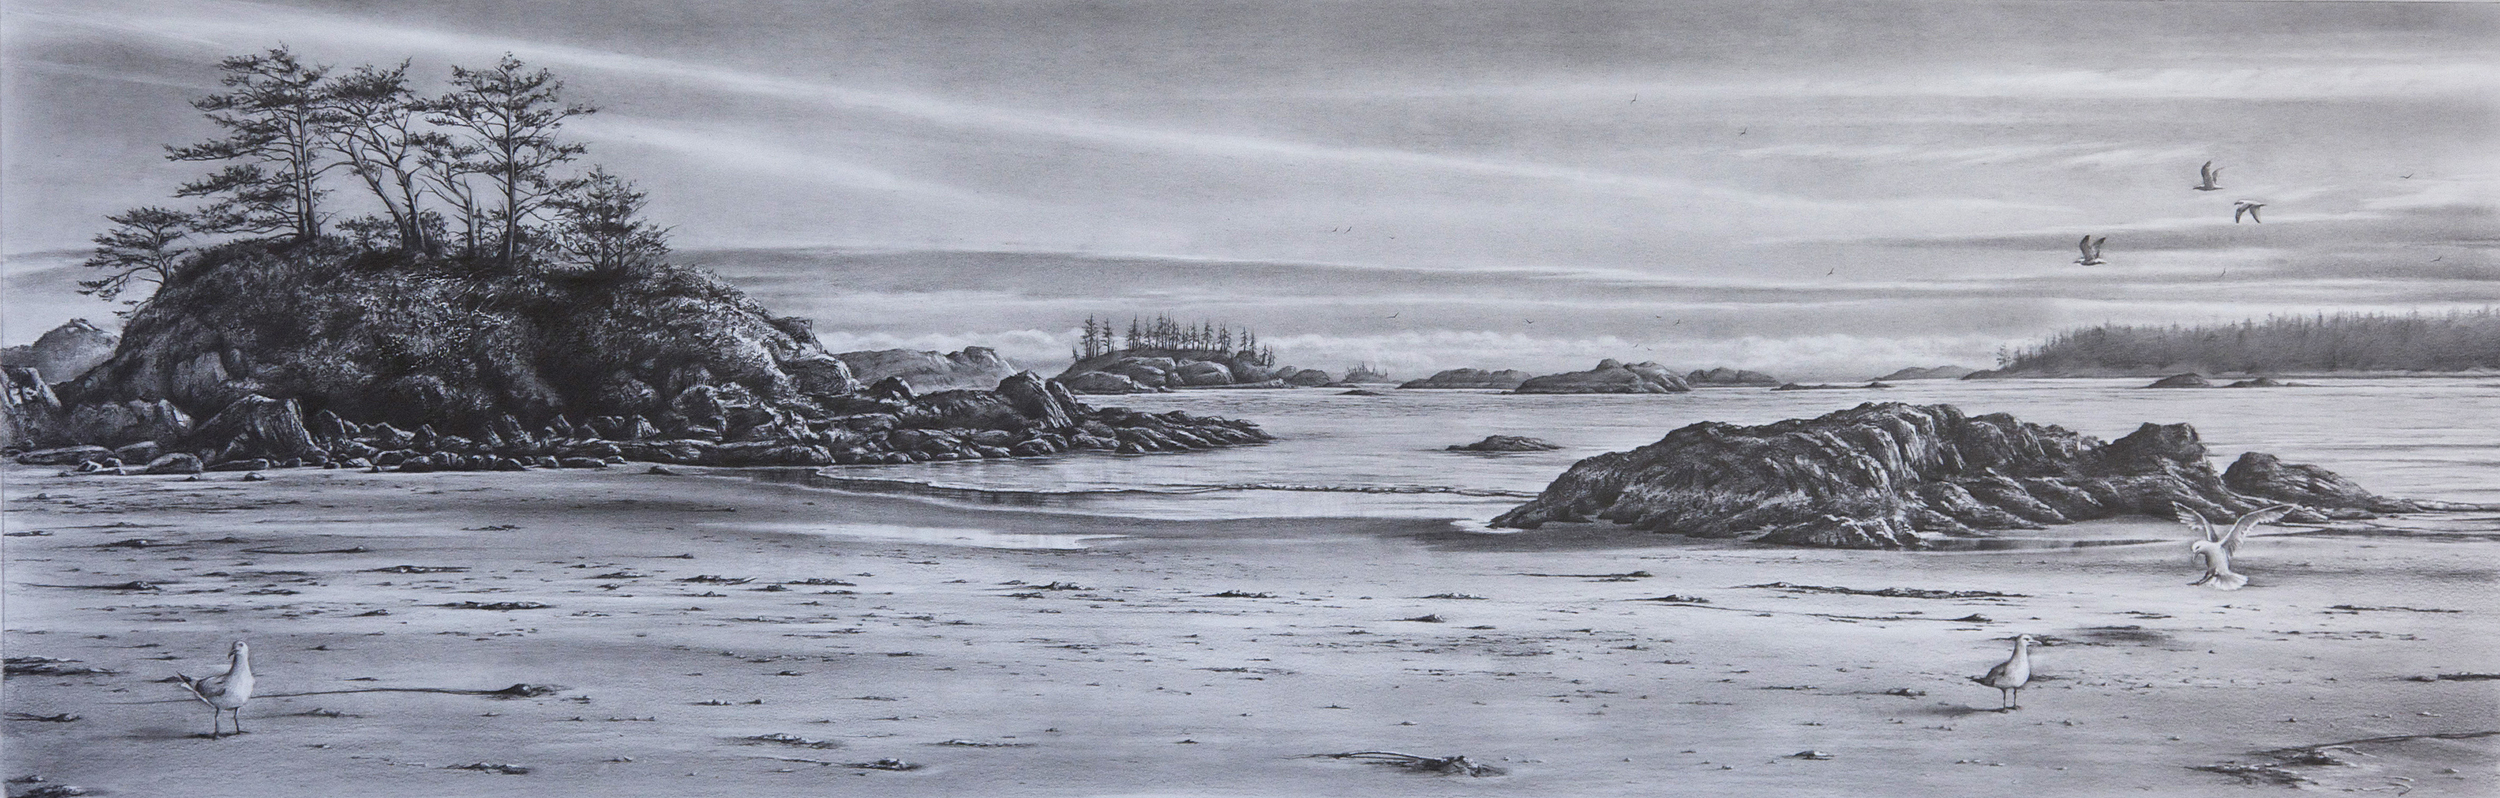 Serenity-bill-higginson-artist-graphite-drawing-realism-black-and-white